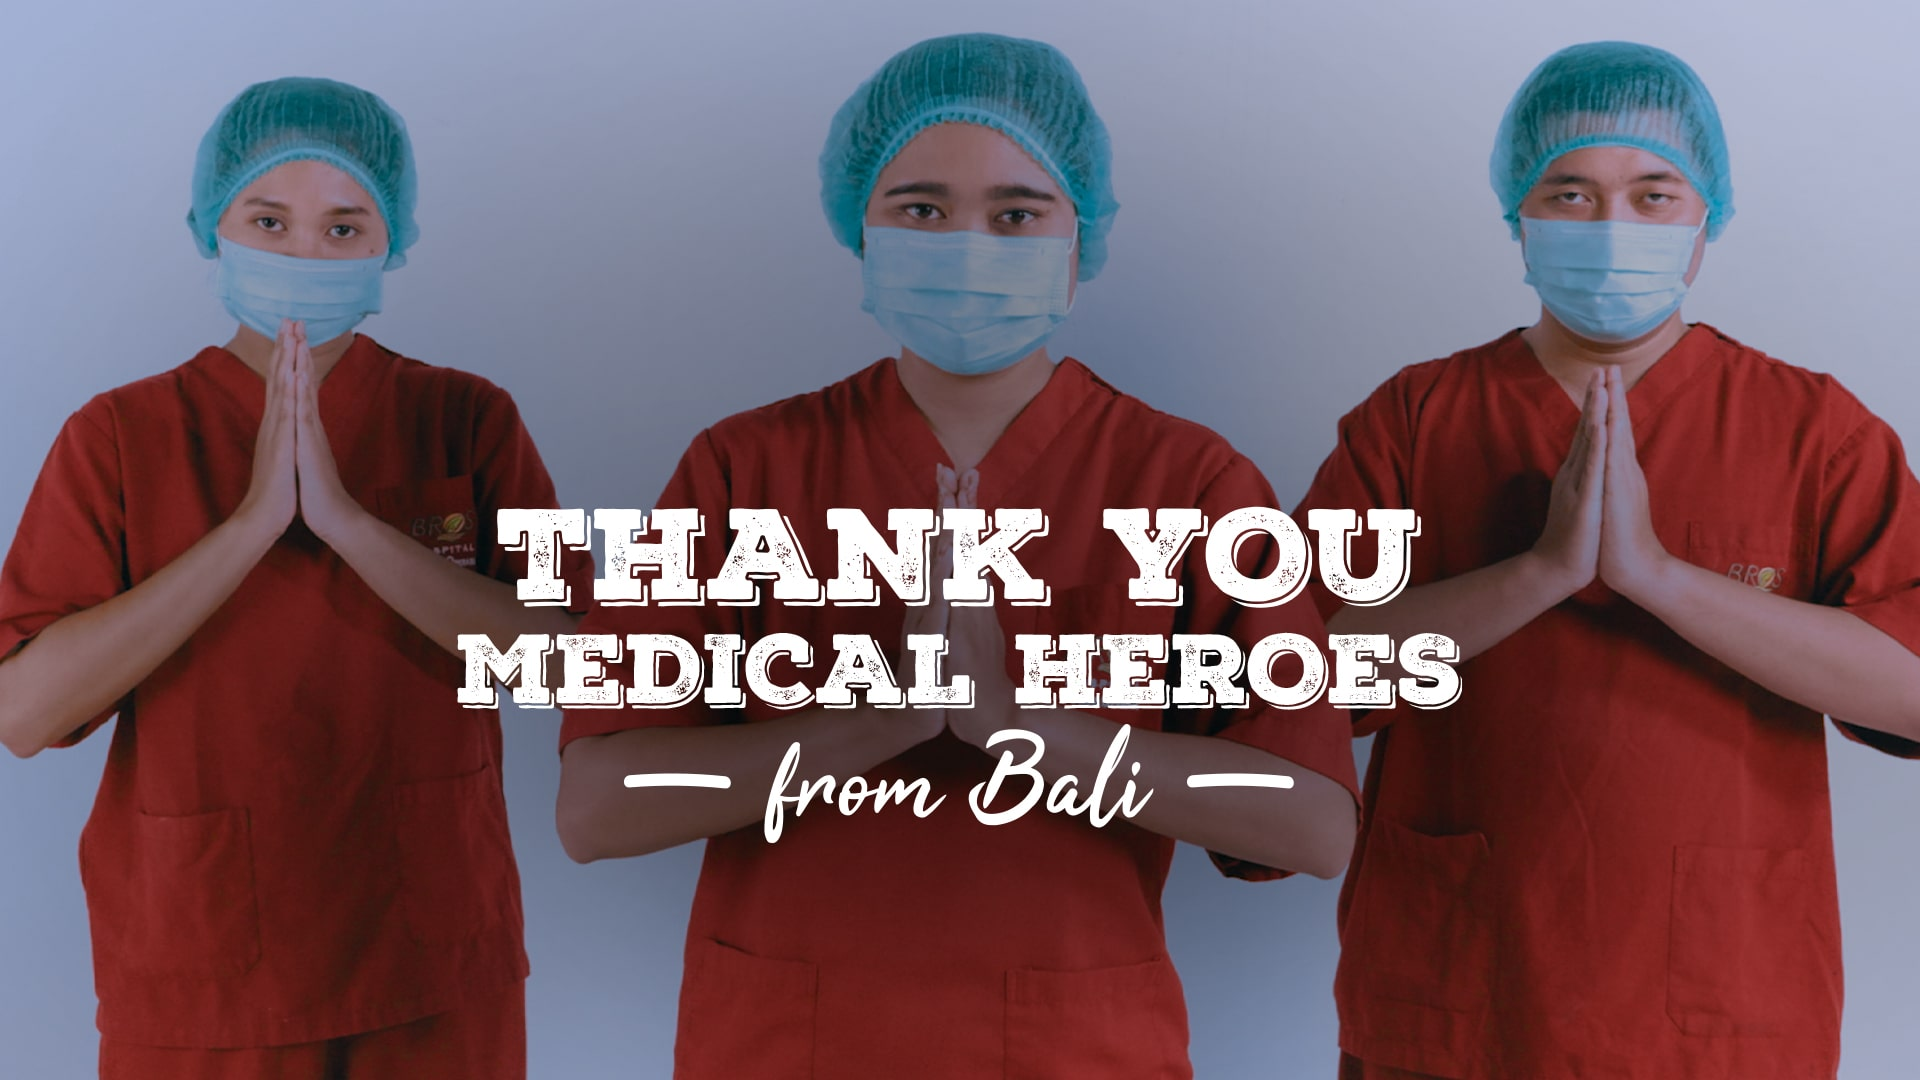 thank you to all medical heroes